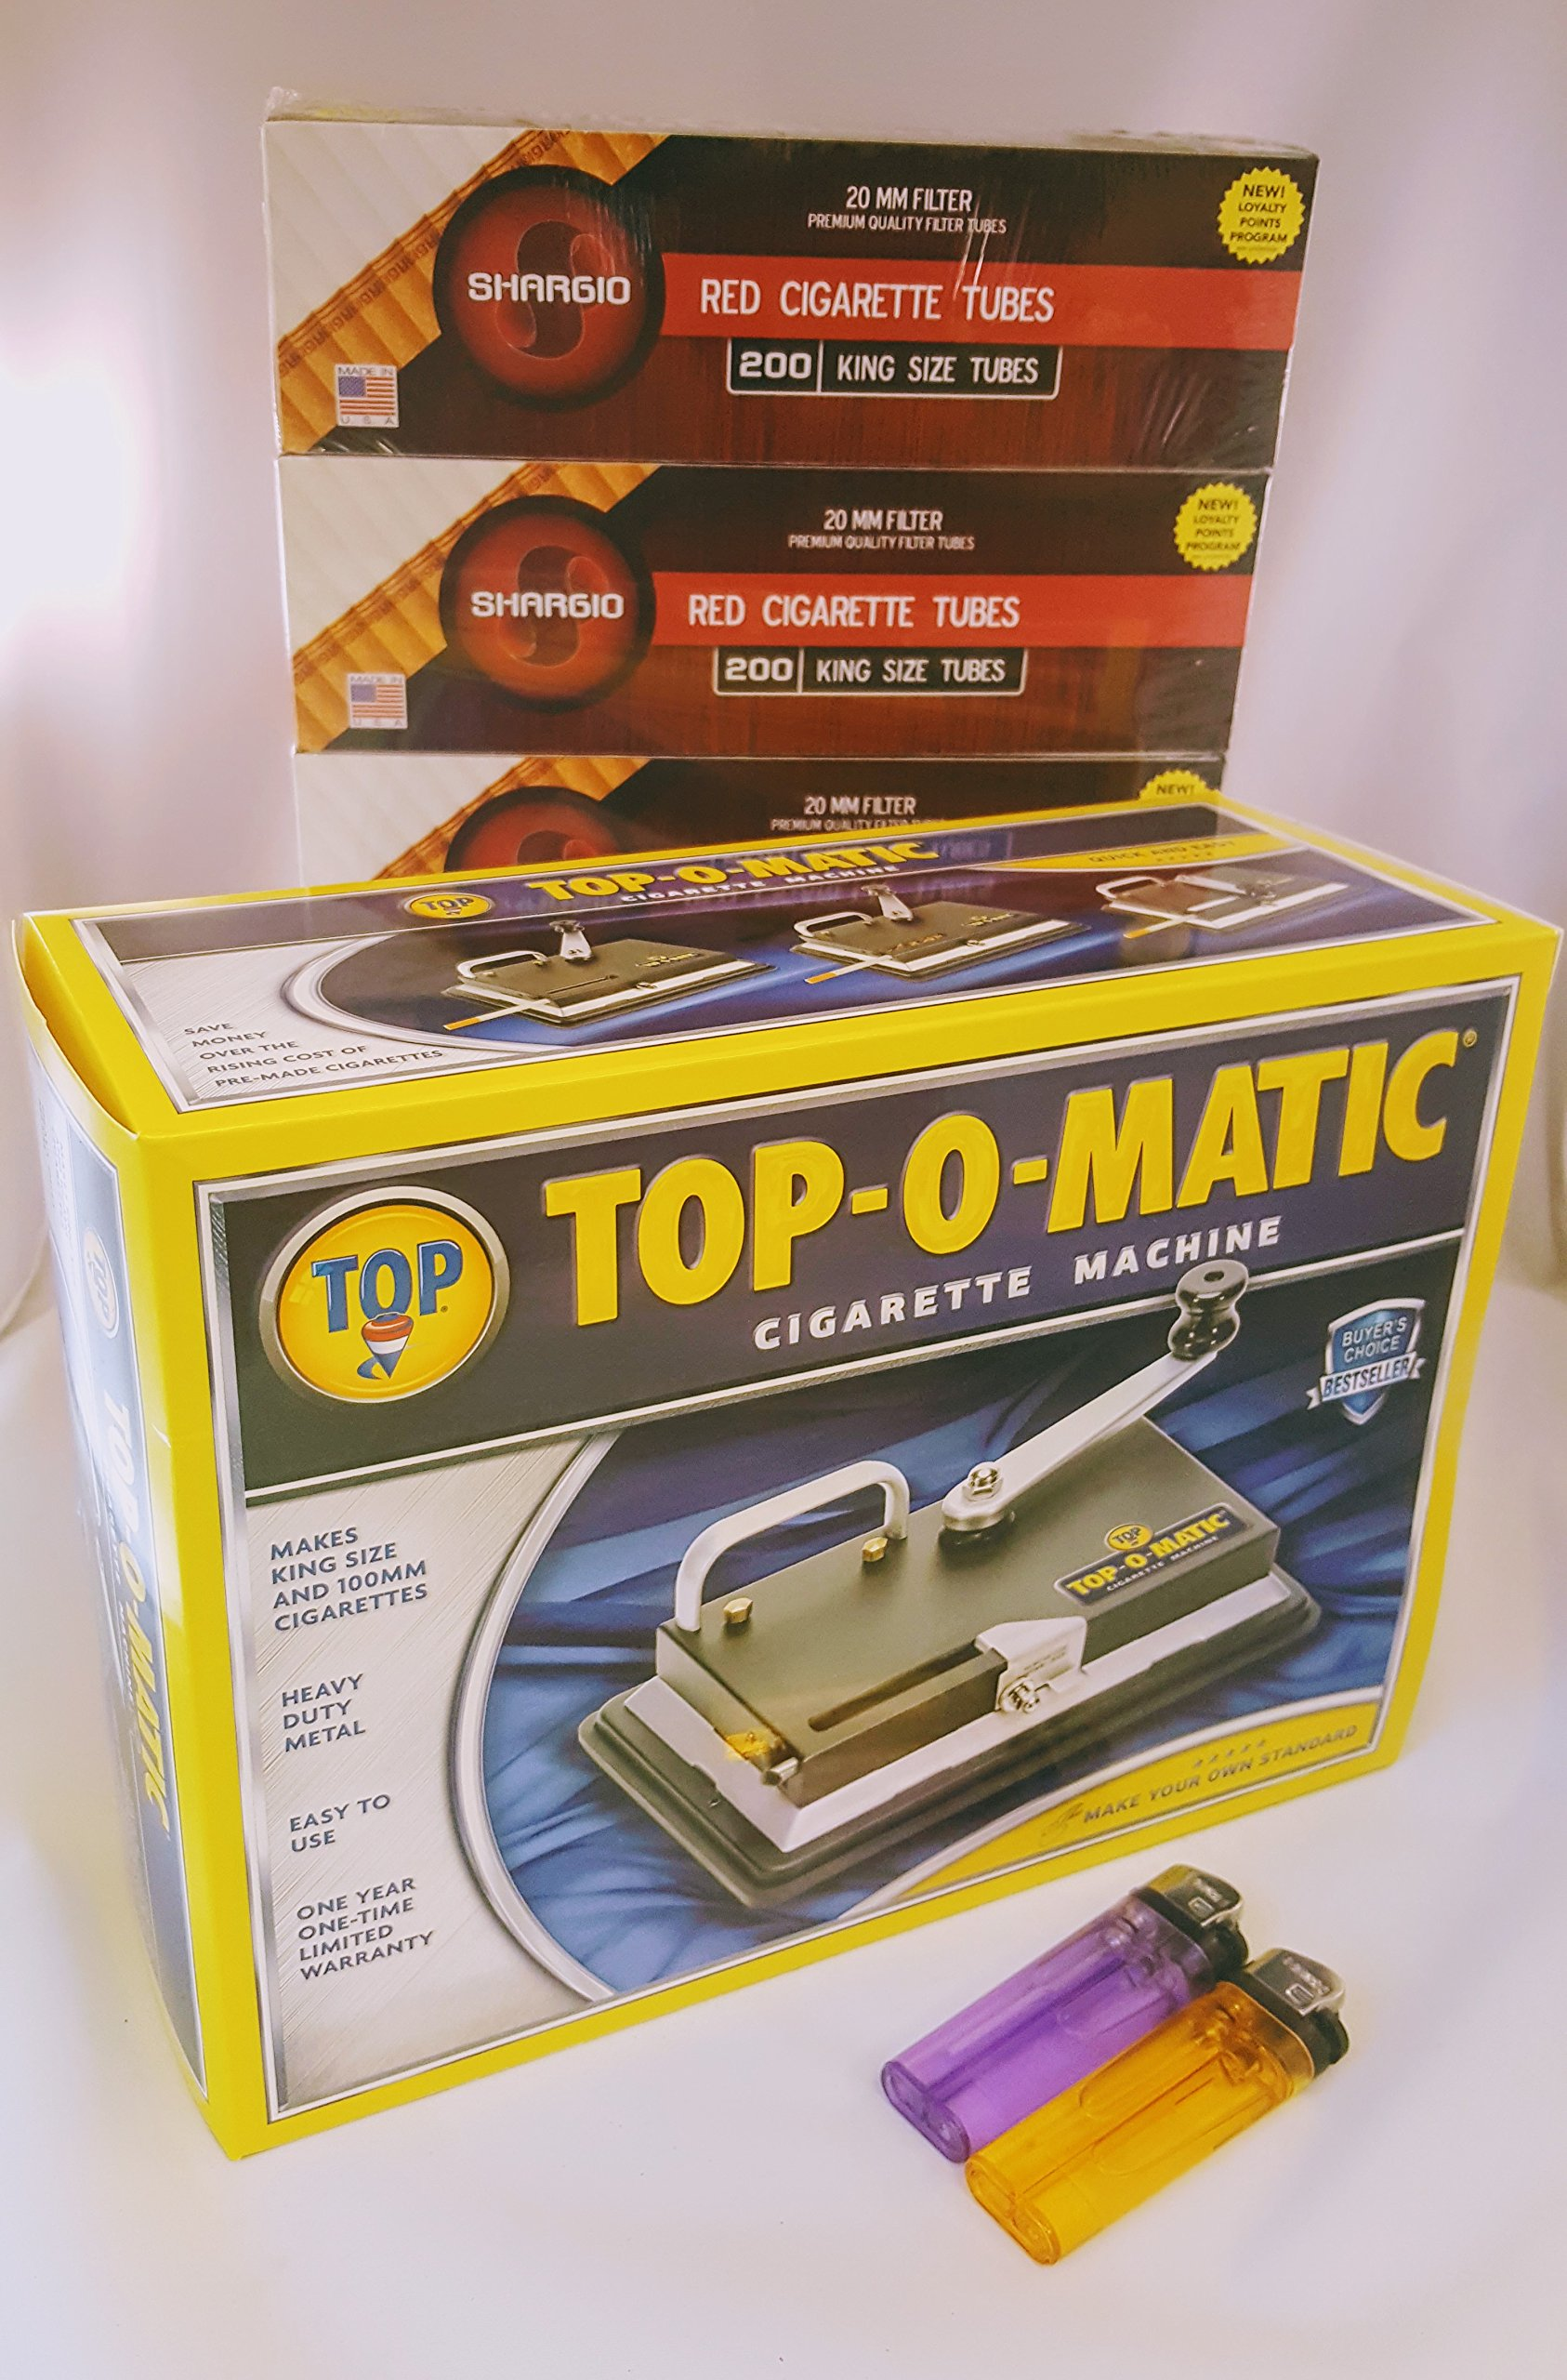 New Top-O-Matic Cigarette Rolling Machine+ FREE Shargio tubes & liighters by Top-O-Matic